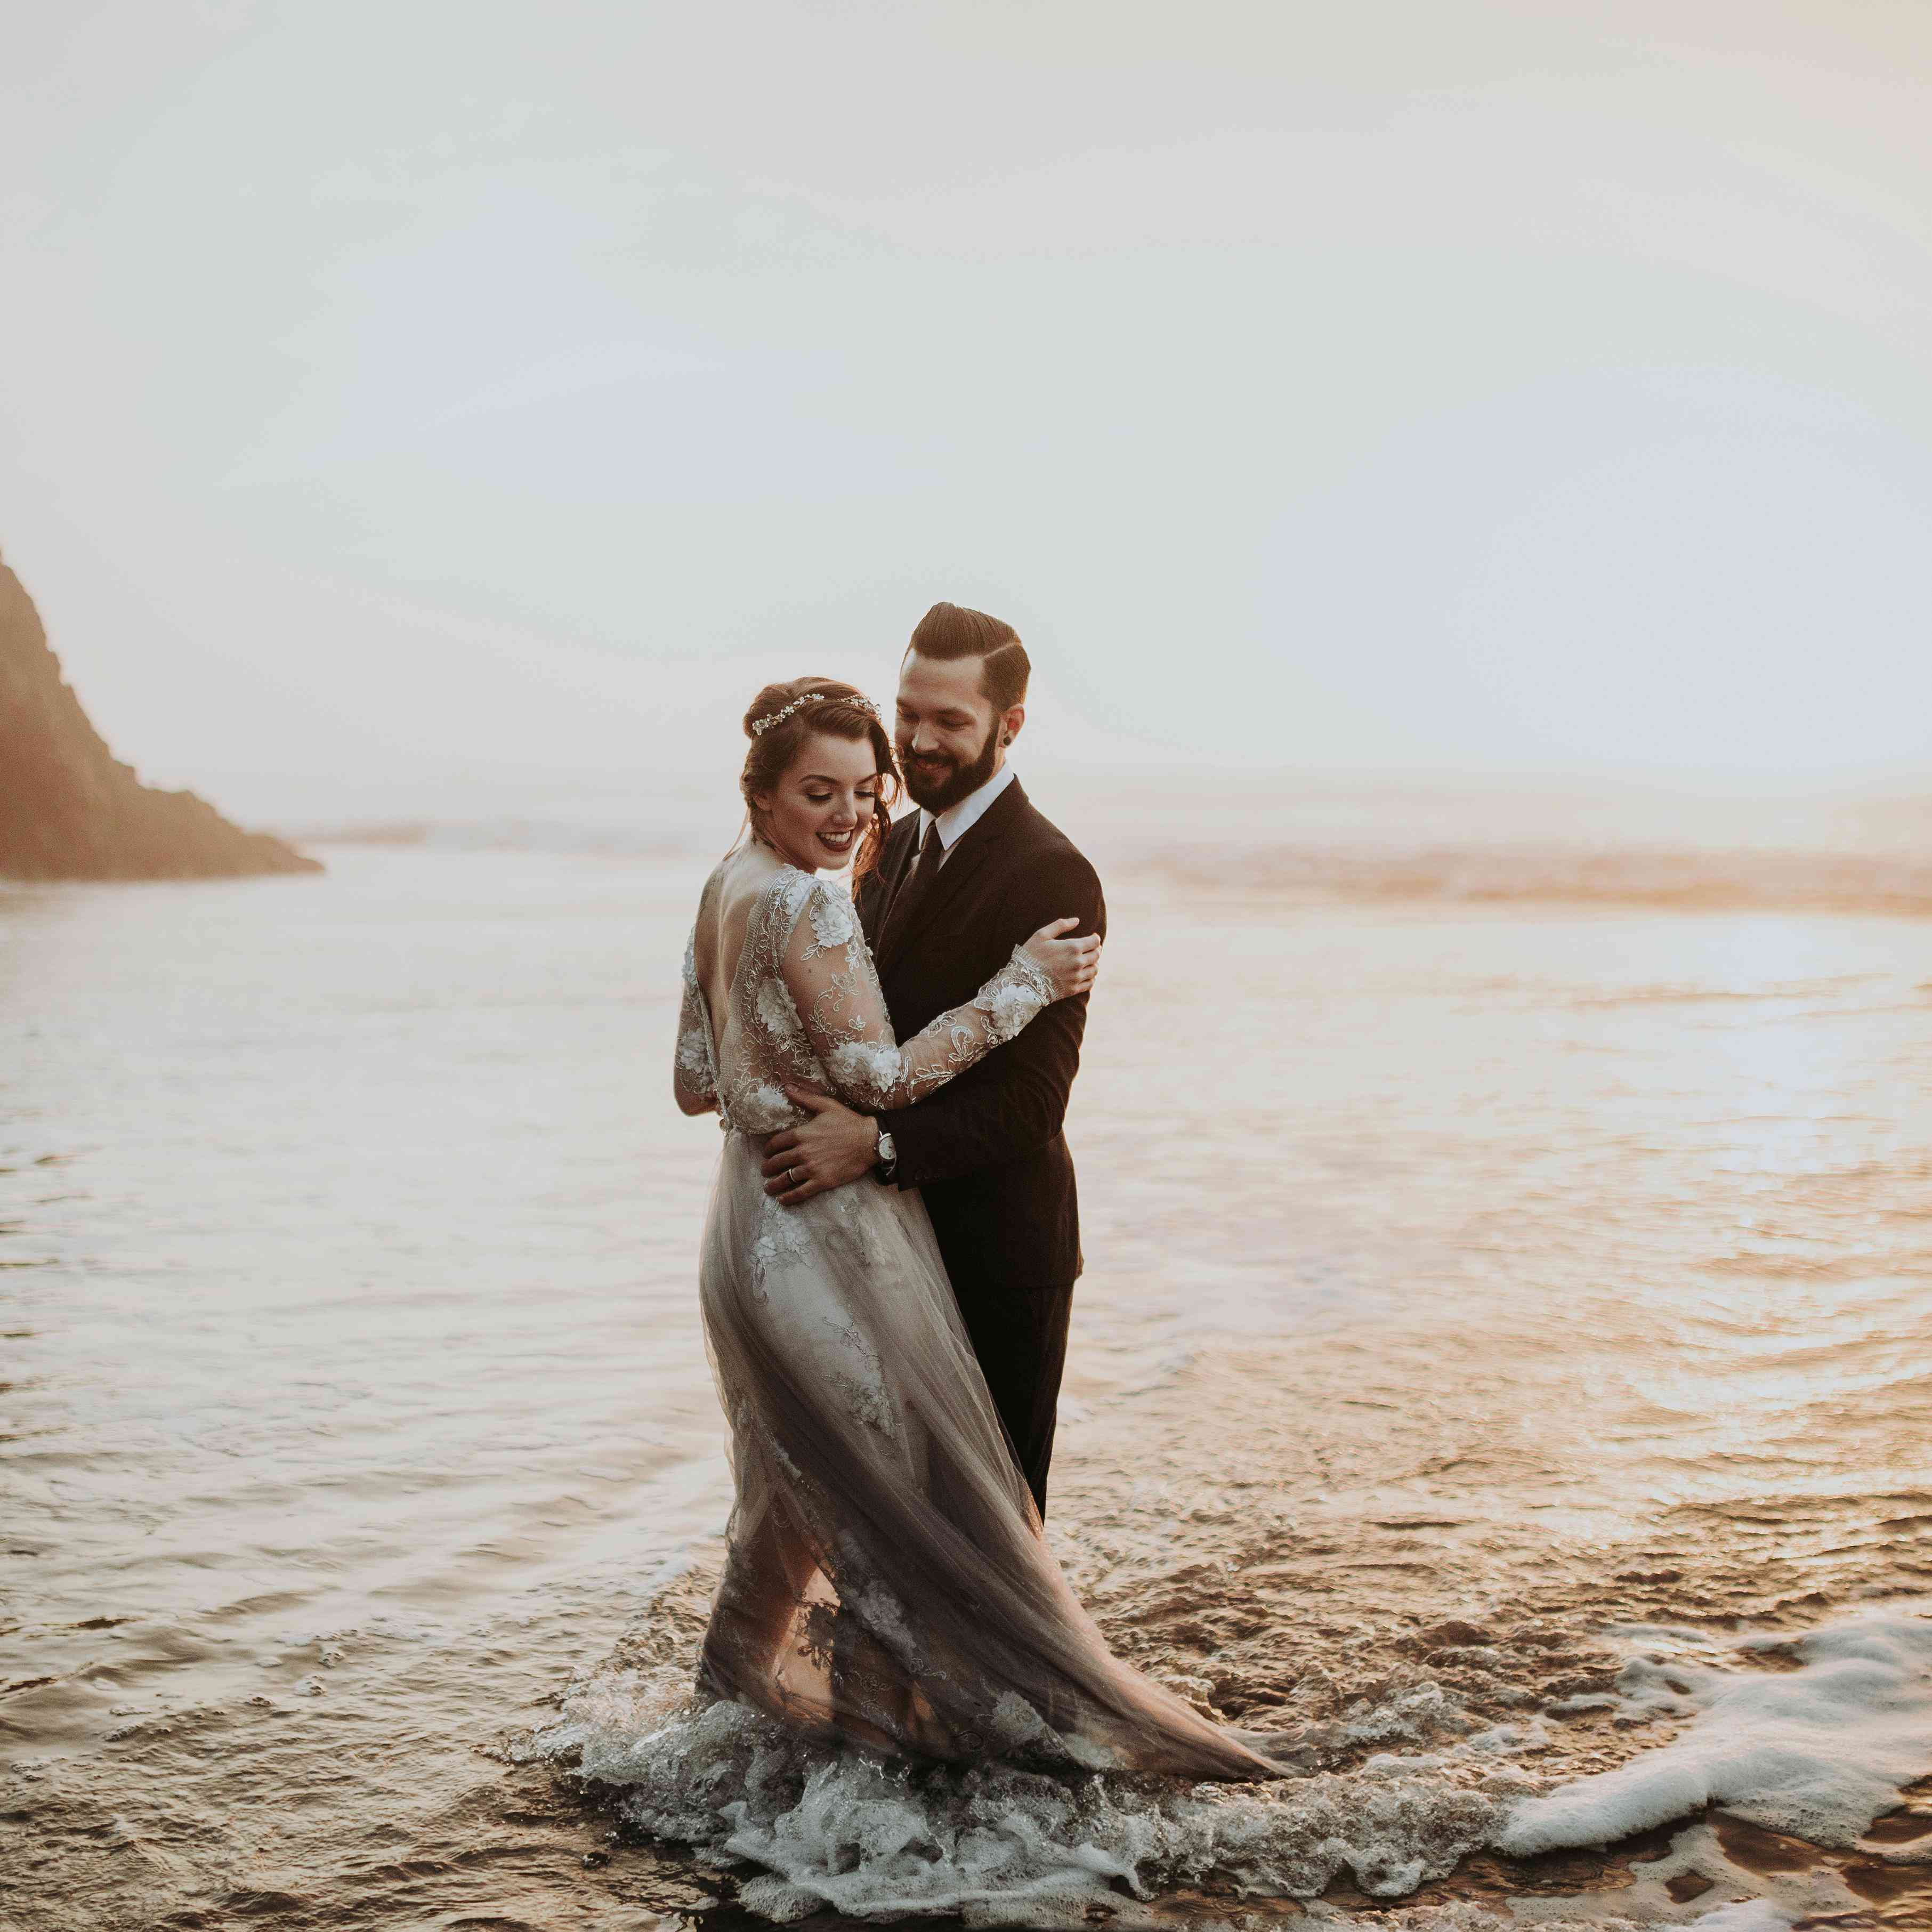 Sunset Beach Wedding Ideas: 25 Sweet Seaside Photos That Will Convince You To Have A